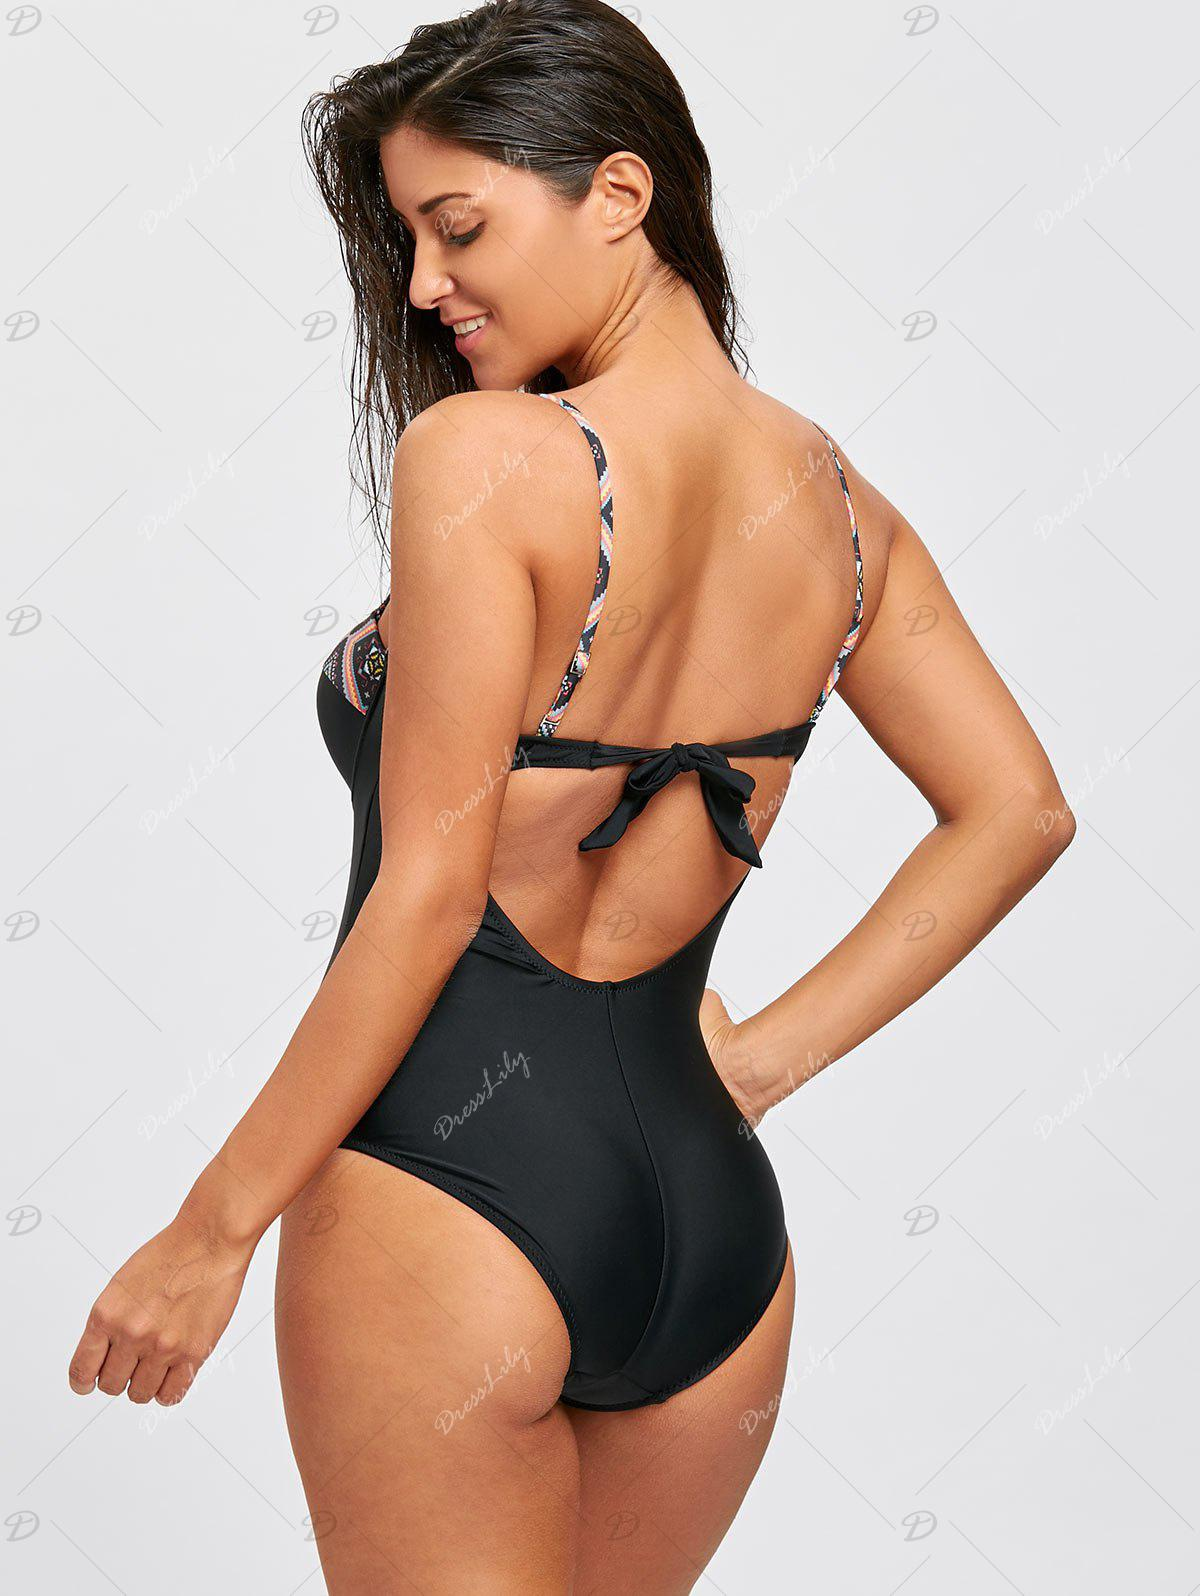 Backless Spaghetti Strap Underwire Swimsuit - BLACK M